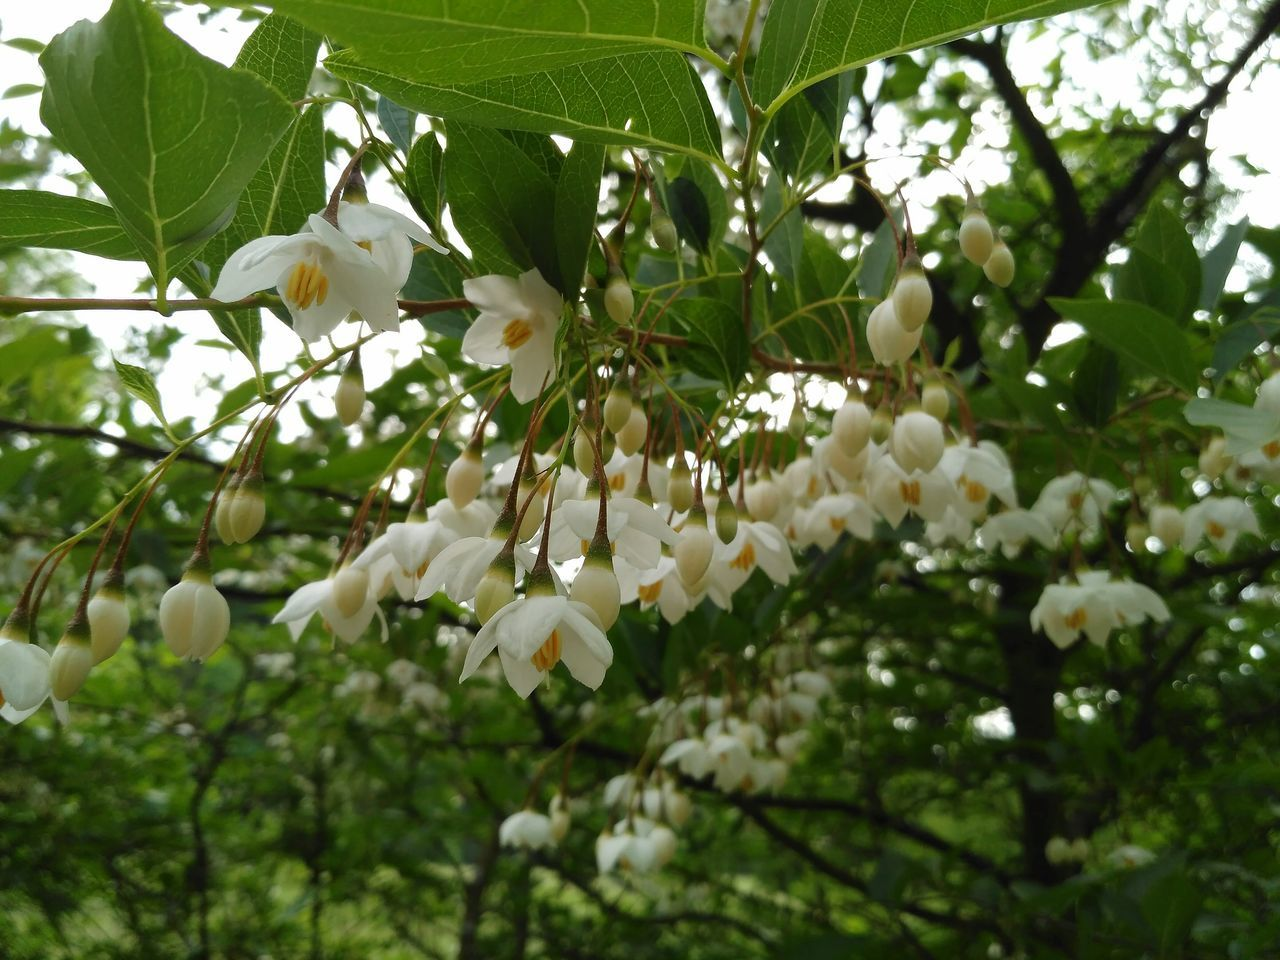 flower, tree, white color, growth, fragility, branch, beauty in nature, freshness, nature, petal, springtime, blossom, apple blossom, twig, blooming, no people, day, leaf, low angle view, outdoors, plant, flower head, close-up